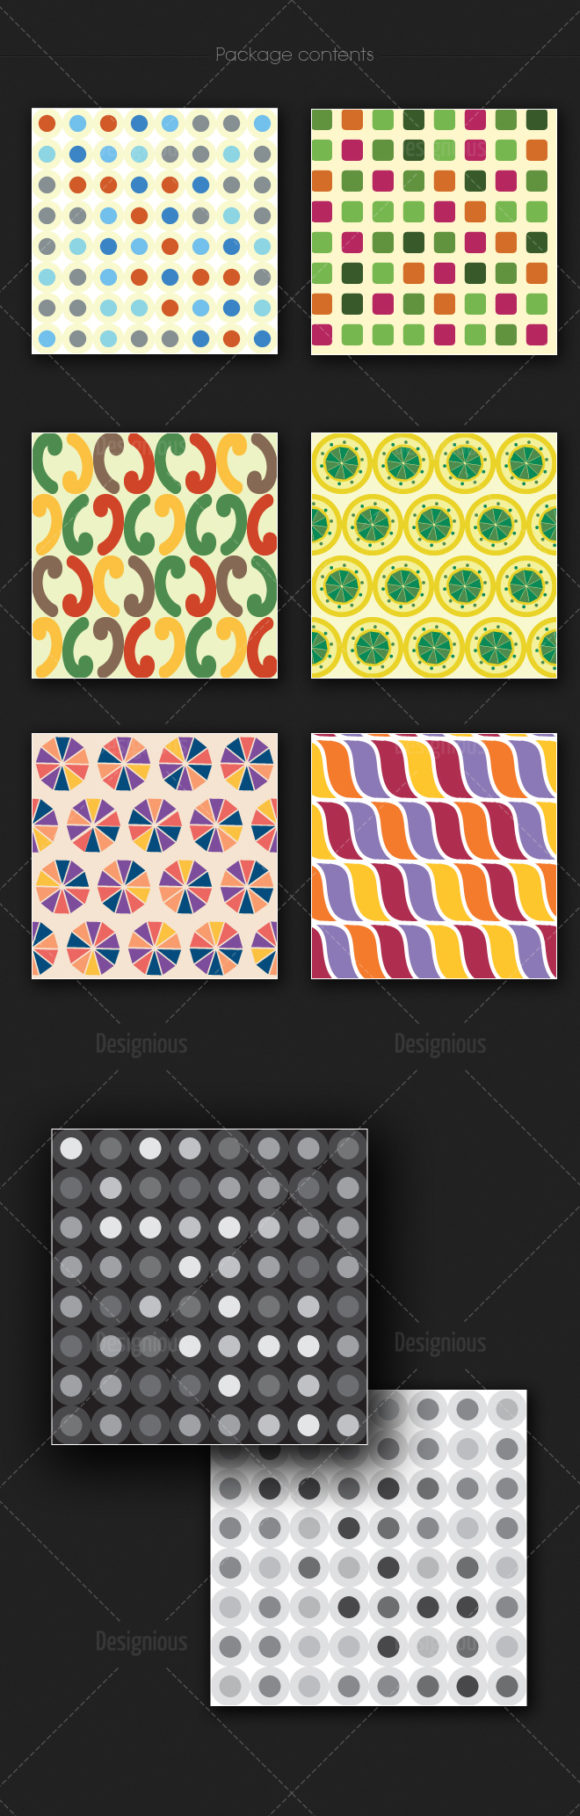 Seamless Patterns Vector Pack 181 4